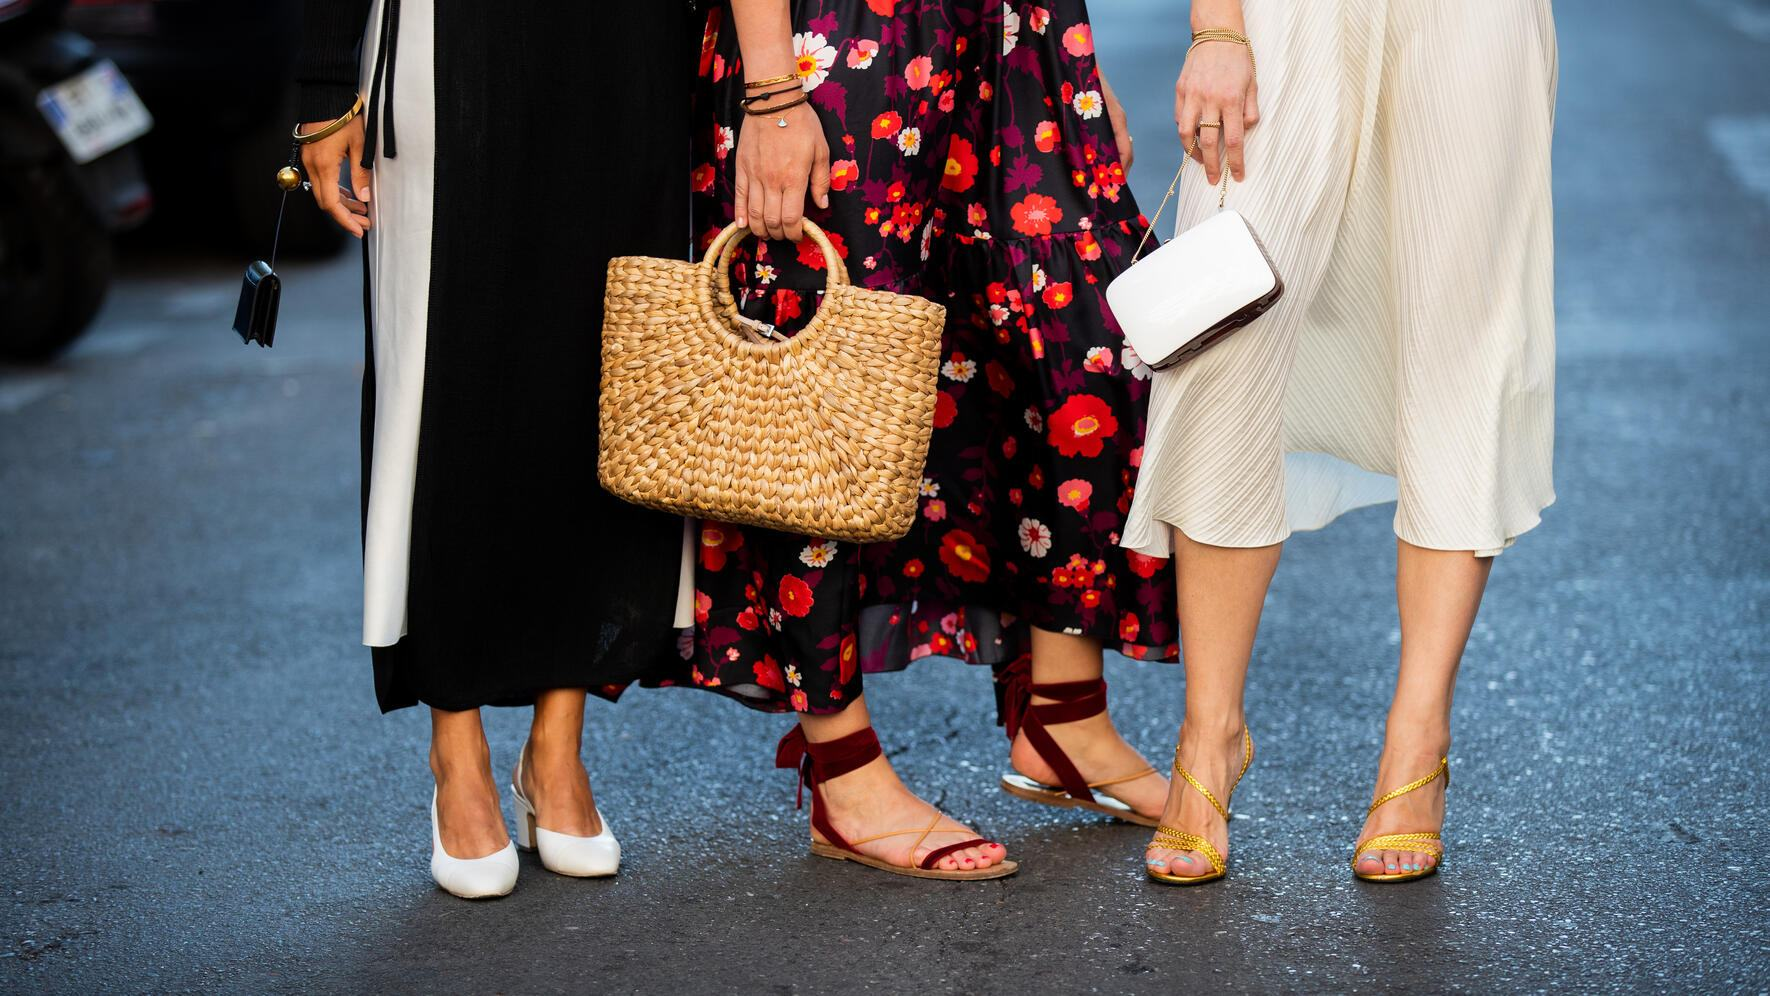 PARIS, FRANCE - JULY 03: Guests seen wearing sandals, straw bag outside Valentino during Paris Fashion Week - Haute Couture Fall/Winter 2019/2020 on July 03, 2019 in Paris, France. (Photo by Christian Vierig/Getty Images)